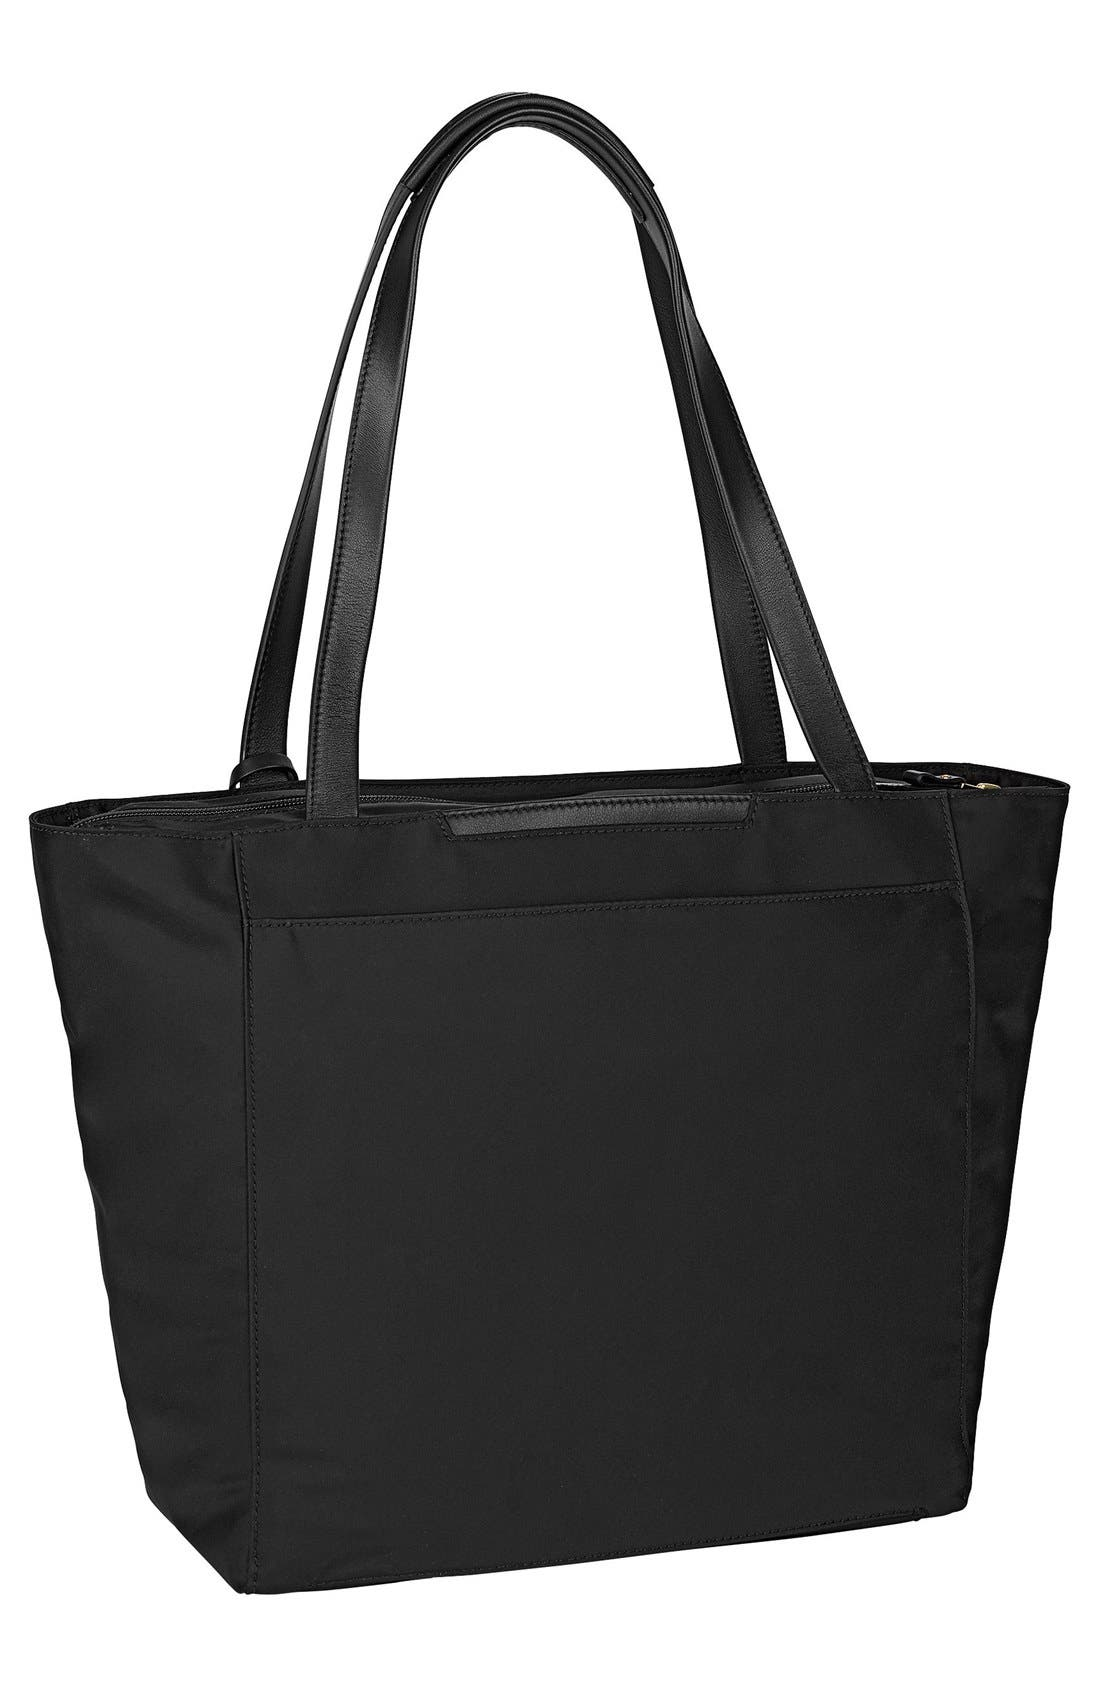 Alternate Image 3  - Tumi 'Small M-Tote' Nylon Tote